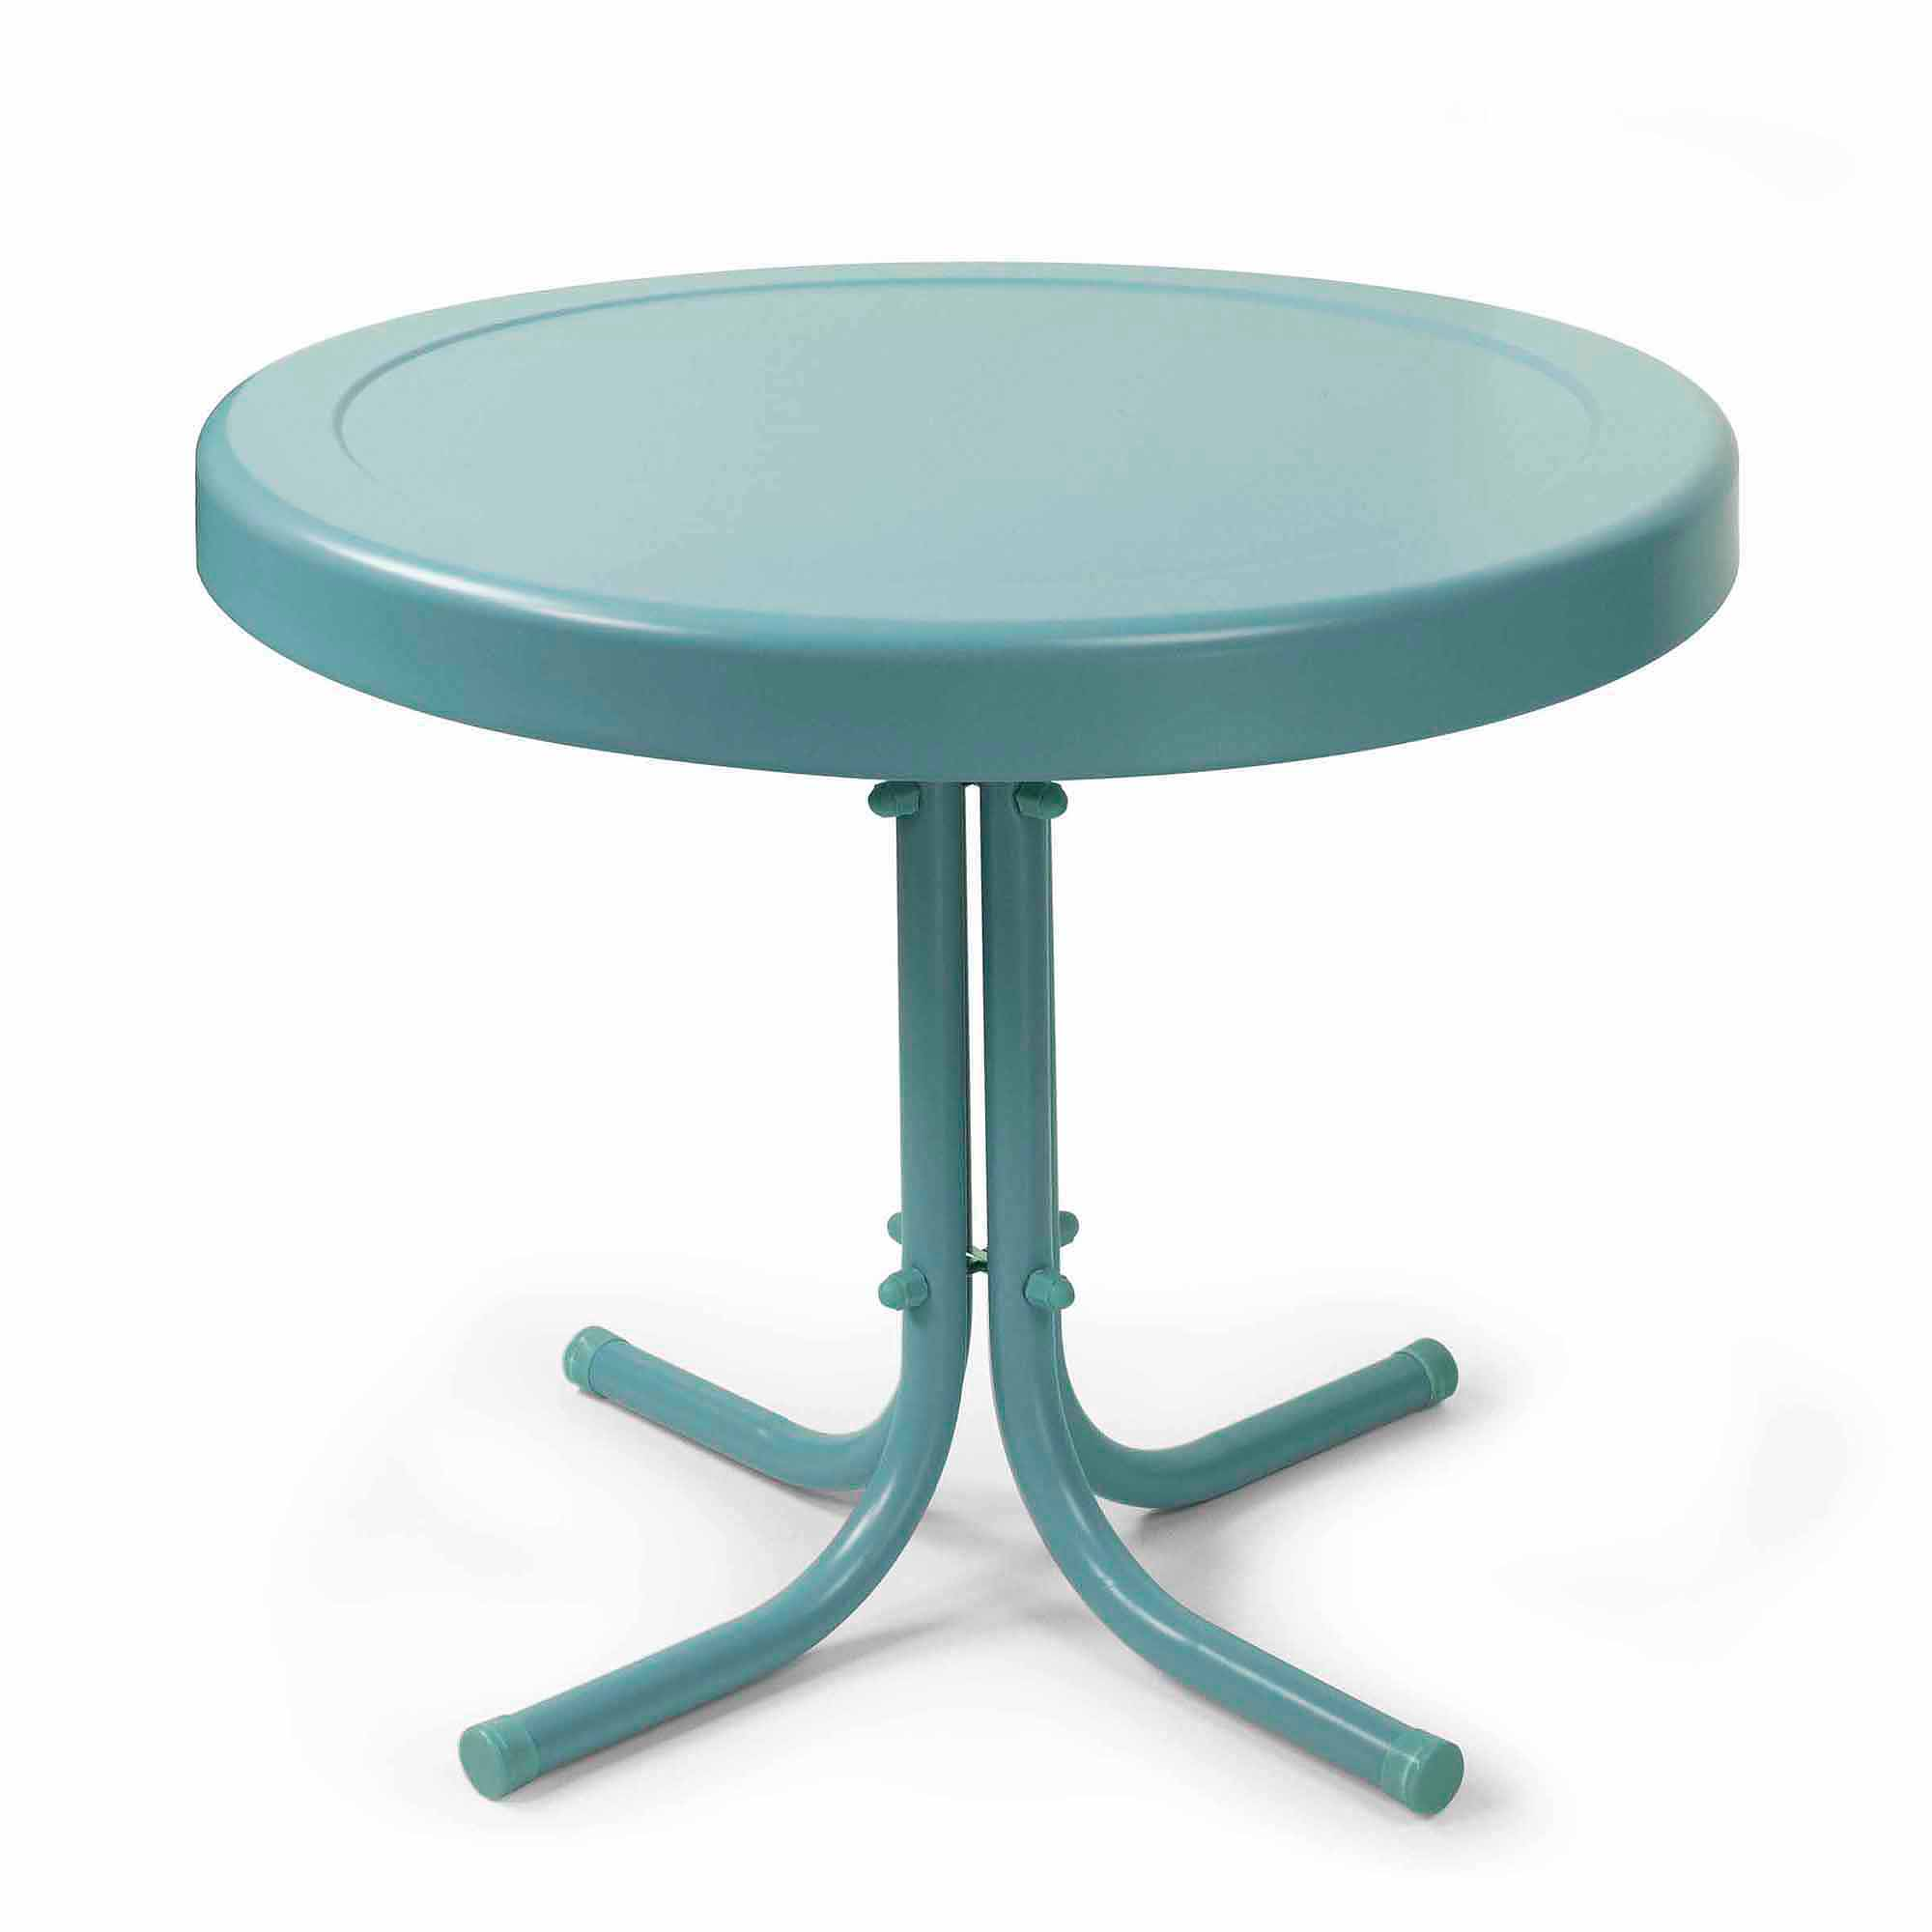 bedside table size standard the outrageous beautiful teal round crosley furniture retro metal side end inch vintage trunk box threshold mirrored accent ikea frame shelf steel